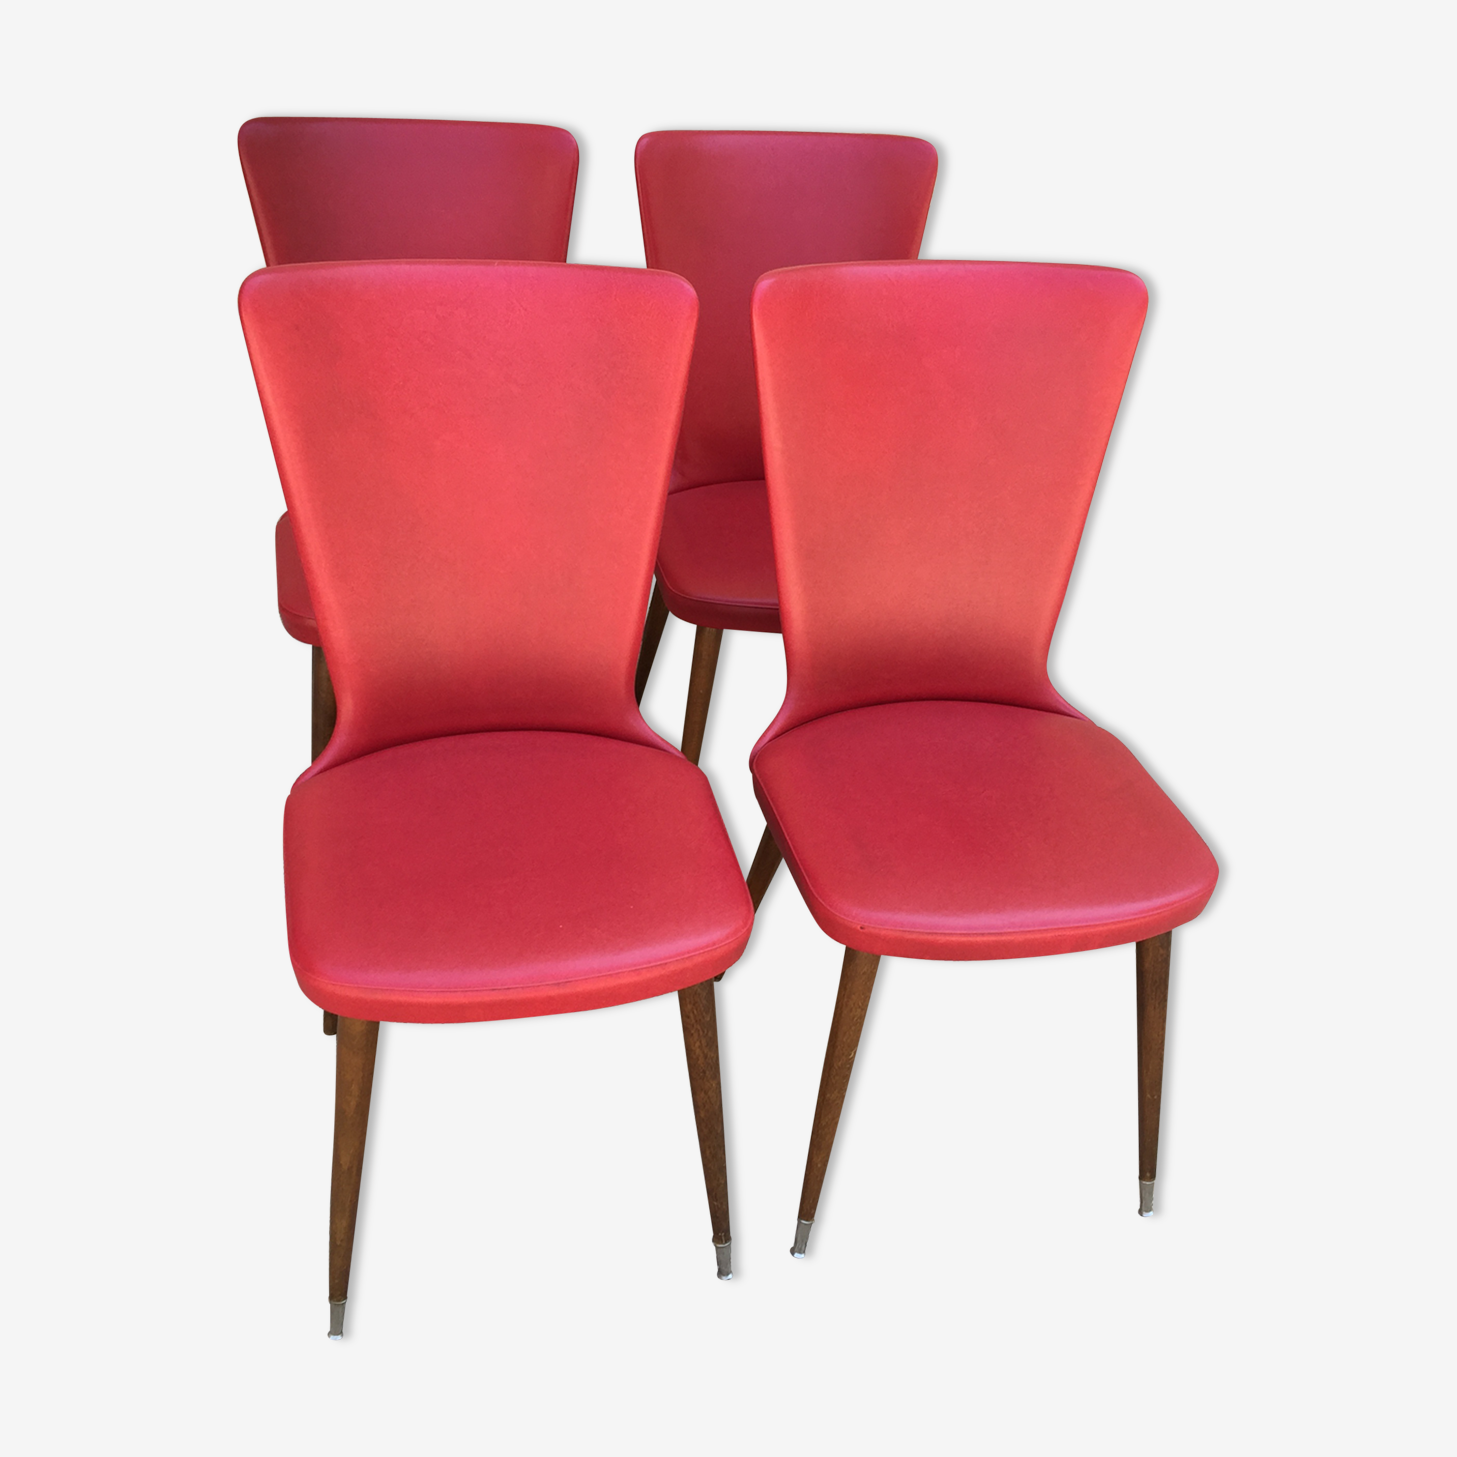 Dinner chairs